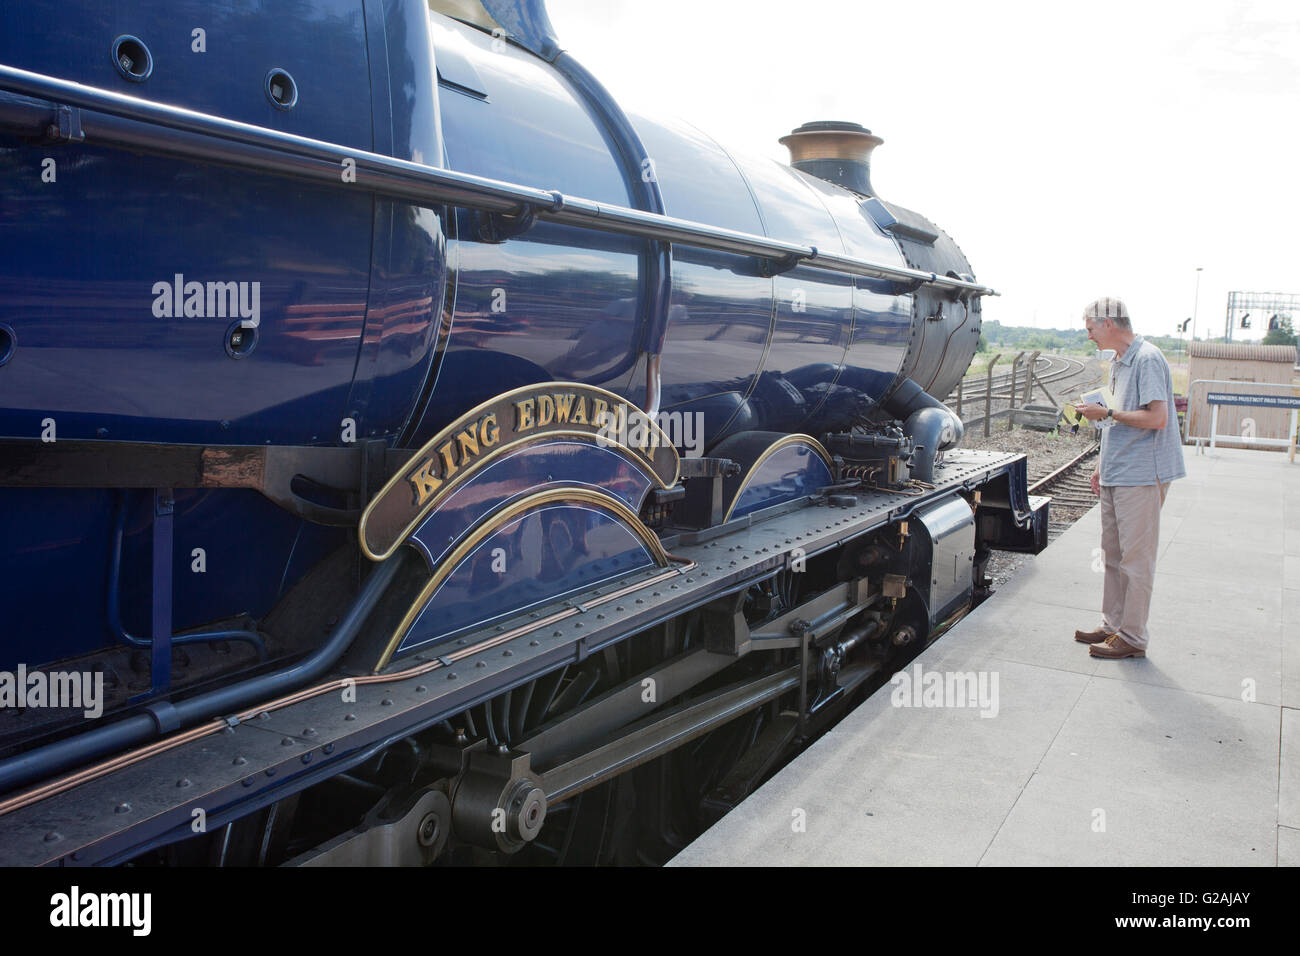 A visitor examining former GWR loco 6023 'King Edward II' preserved at the Didcot Railway Centre, Oxfordshire, - Stock Image